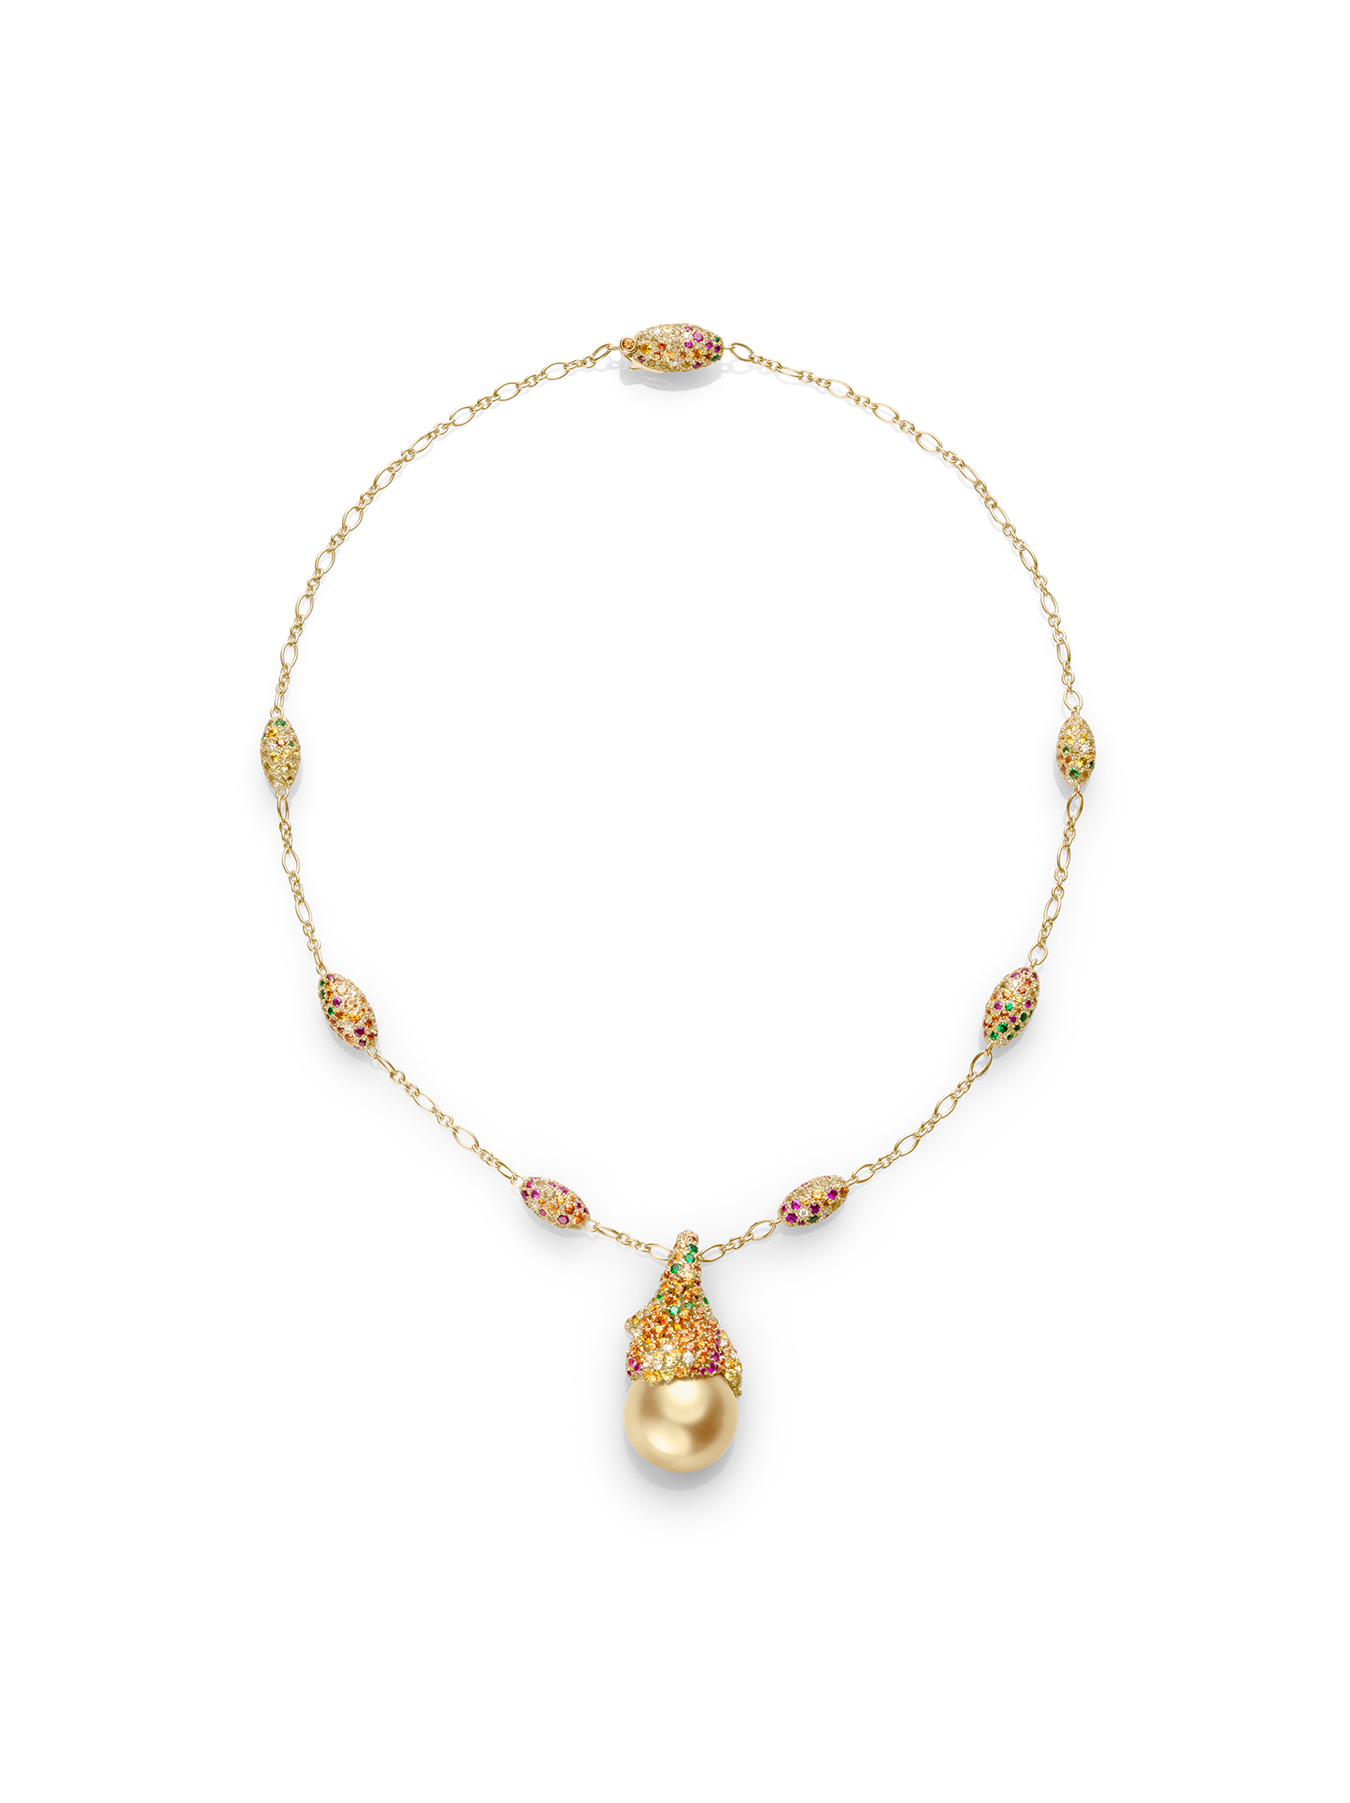 jewelry mikimoto and products pendant necklaces morning necklace gold enlarged dew pearl cultured diamonds akoya white